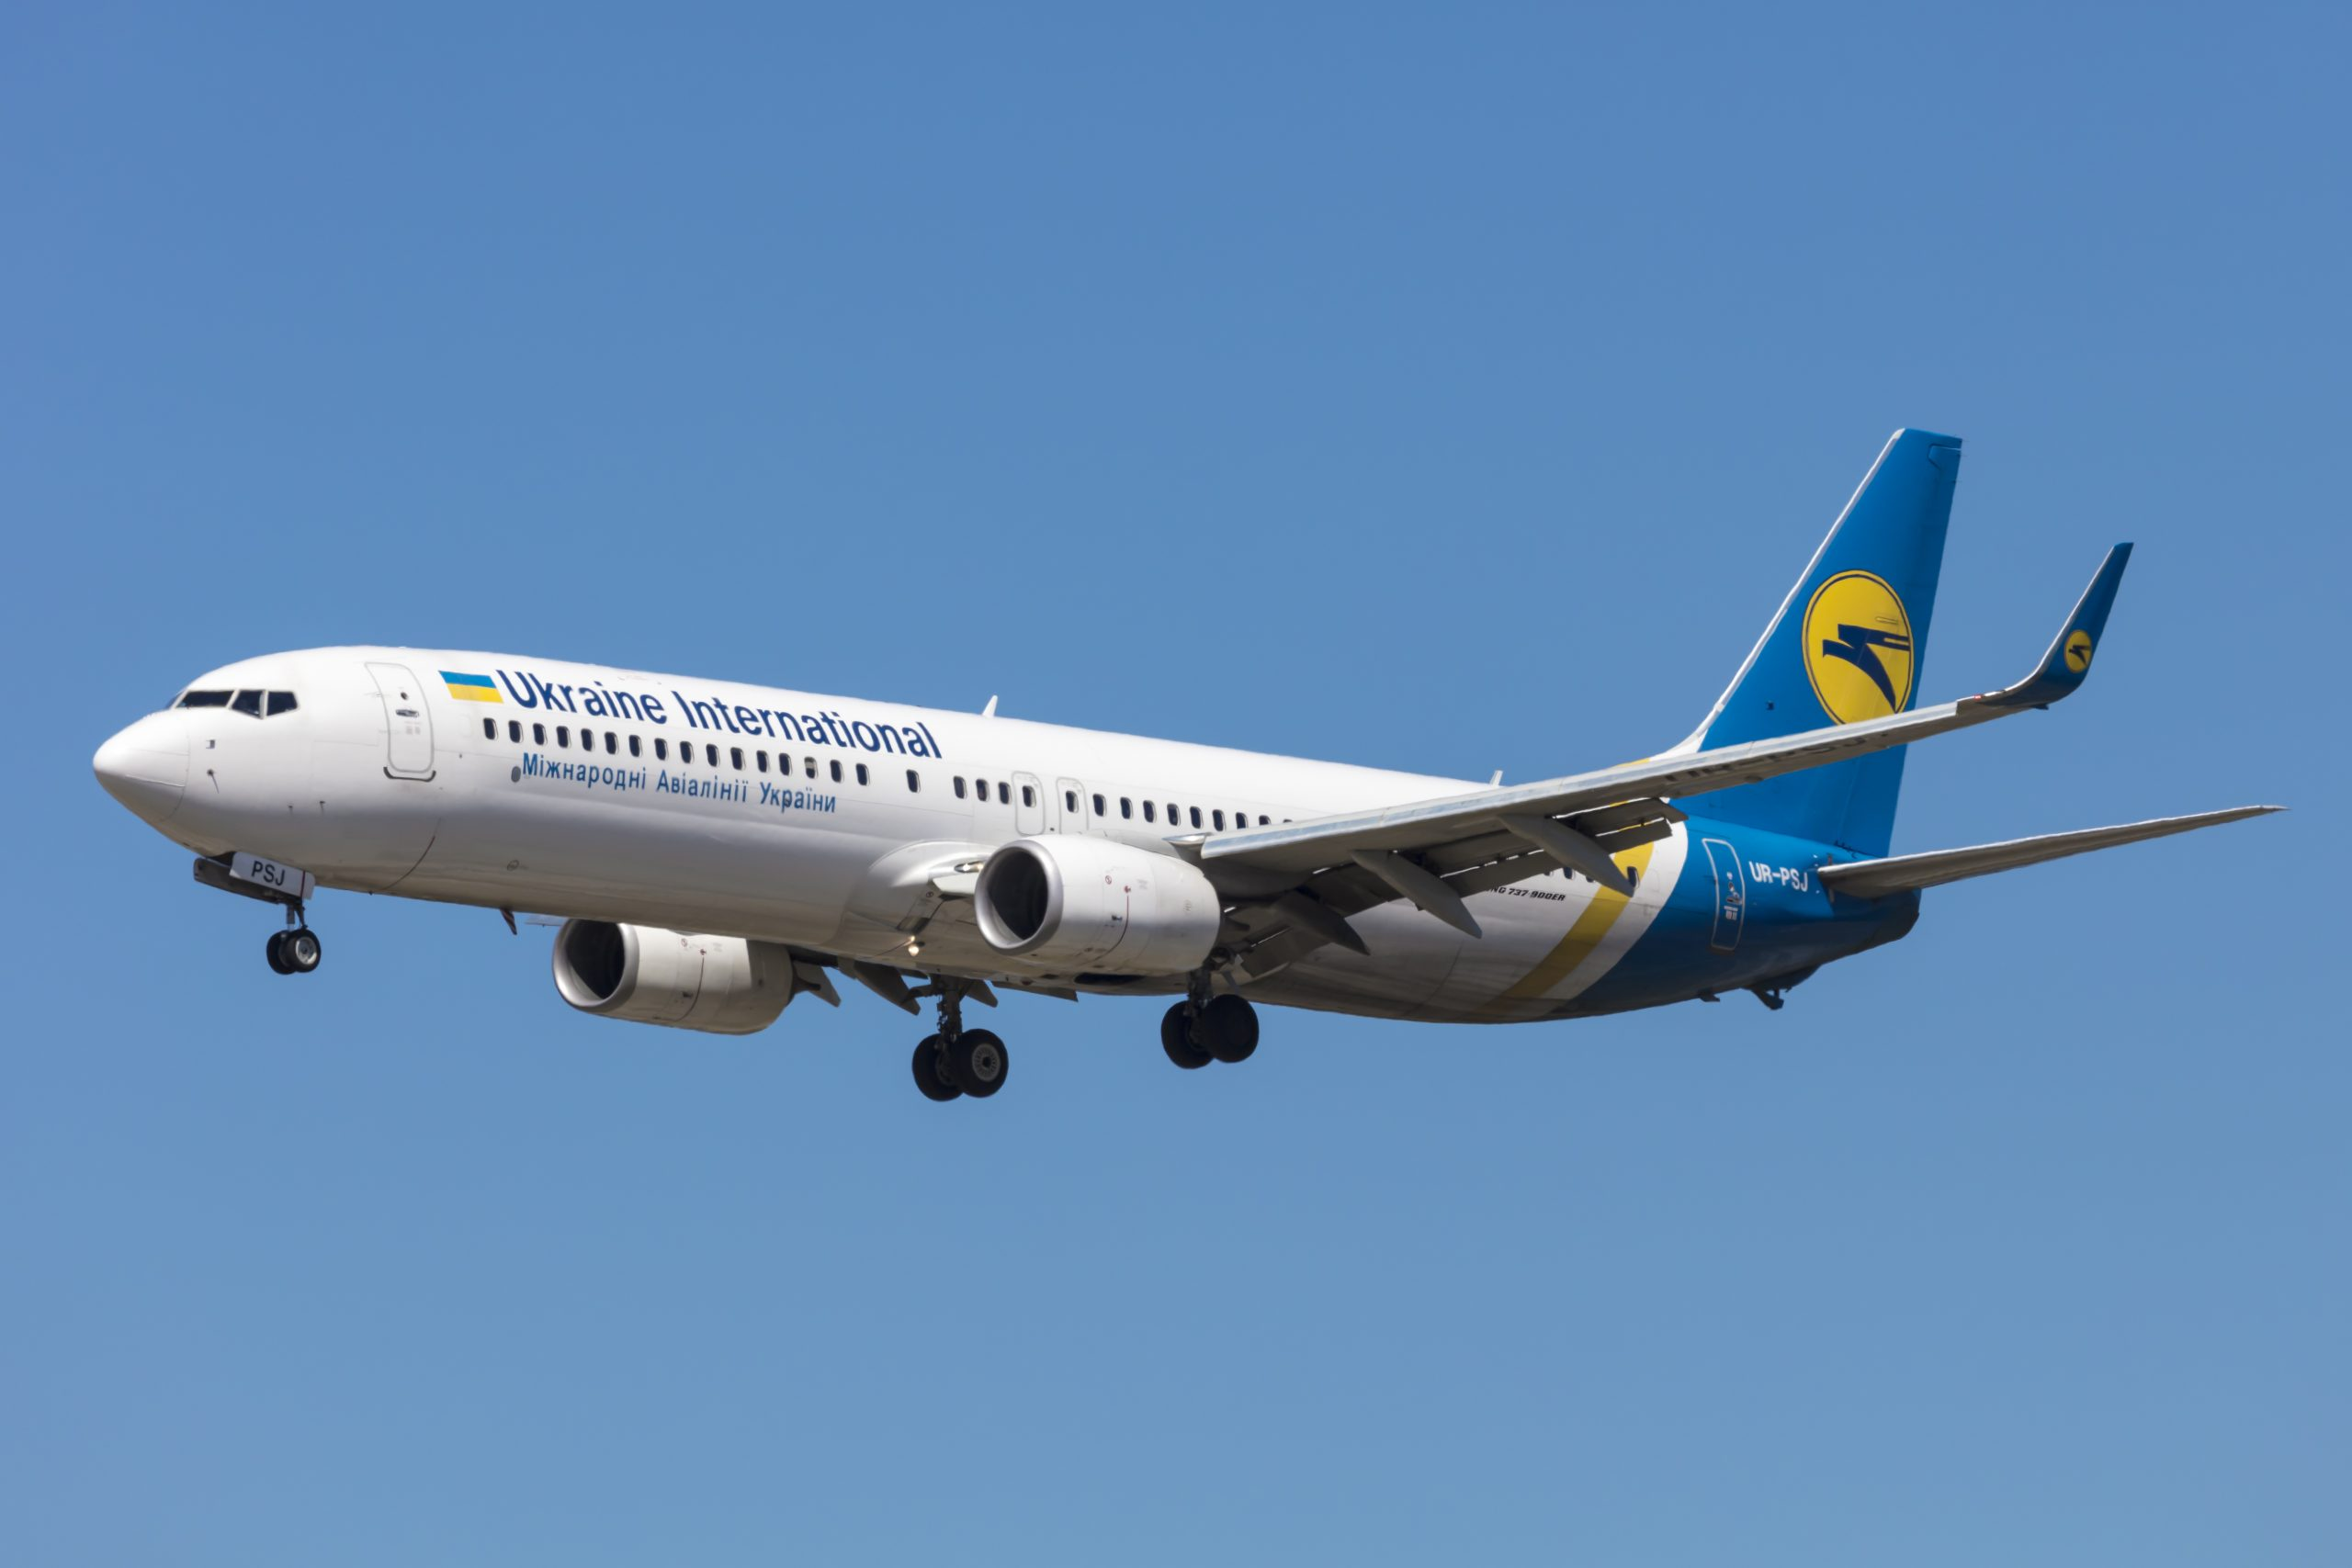 En Boeing 737-900ER fra Ukraine International Airlines. Foto: © Thorbjørn Brunander Sund, Danish Aviation Photo